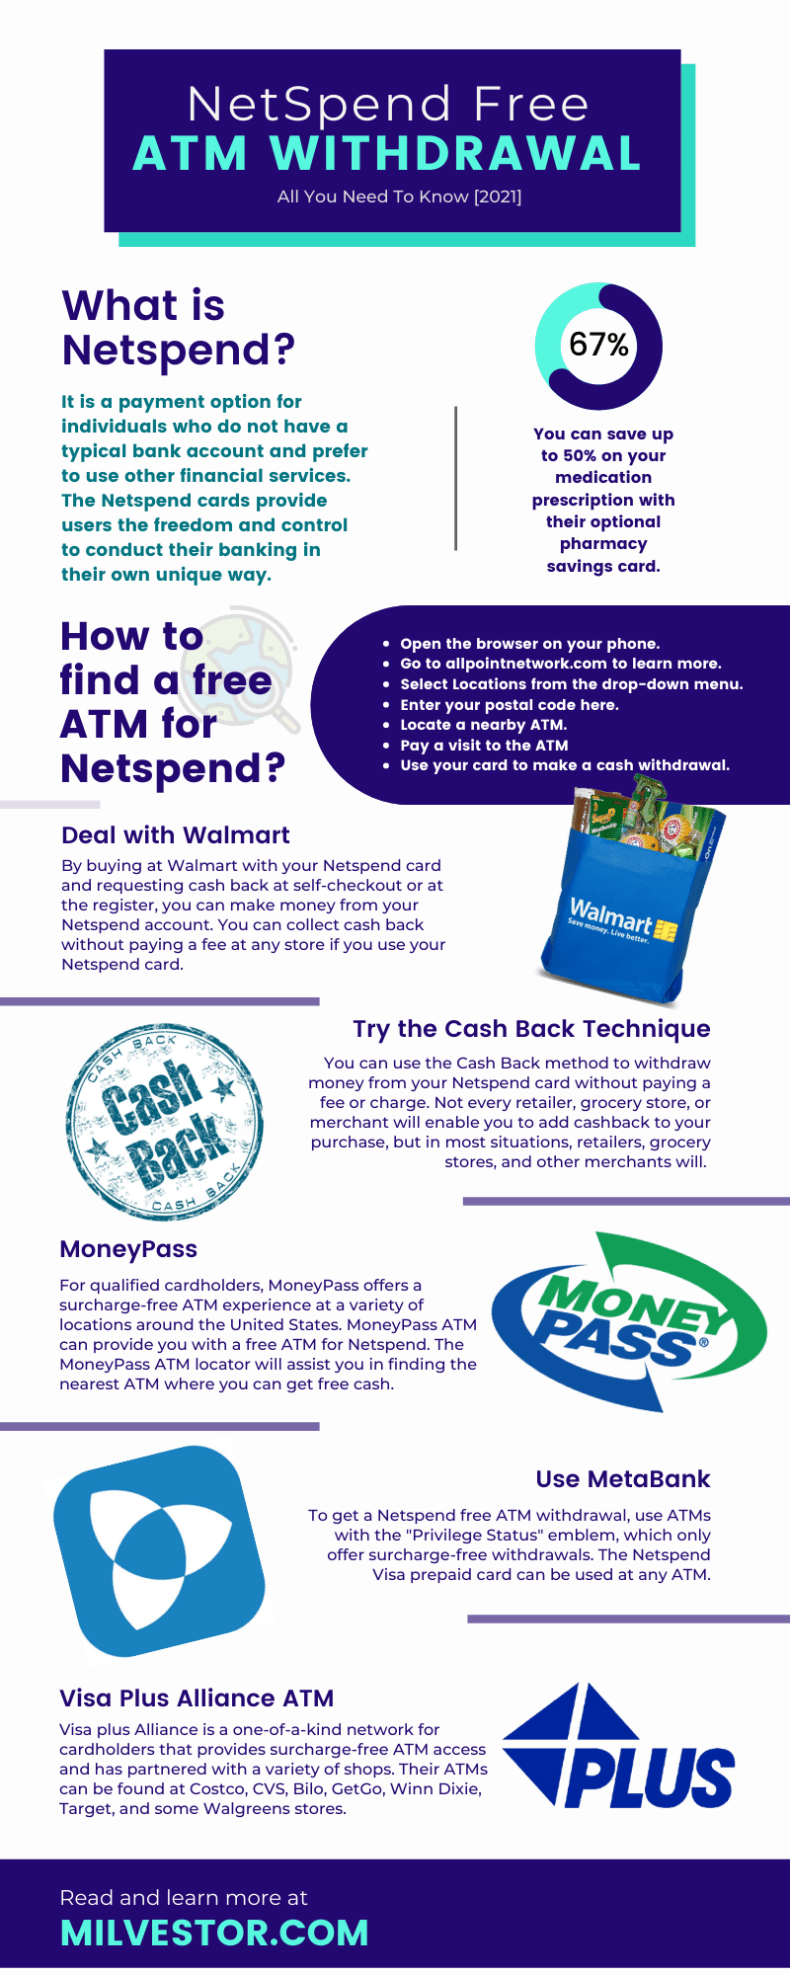 NetSpend Free ATM Withdrawal